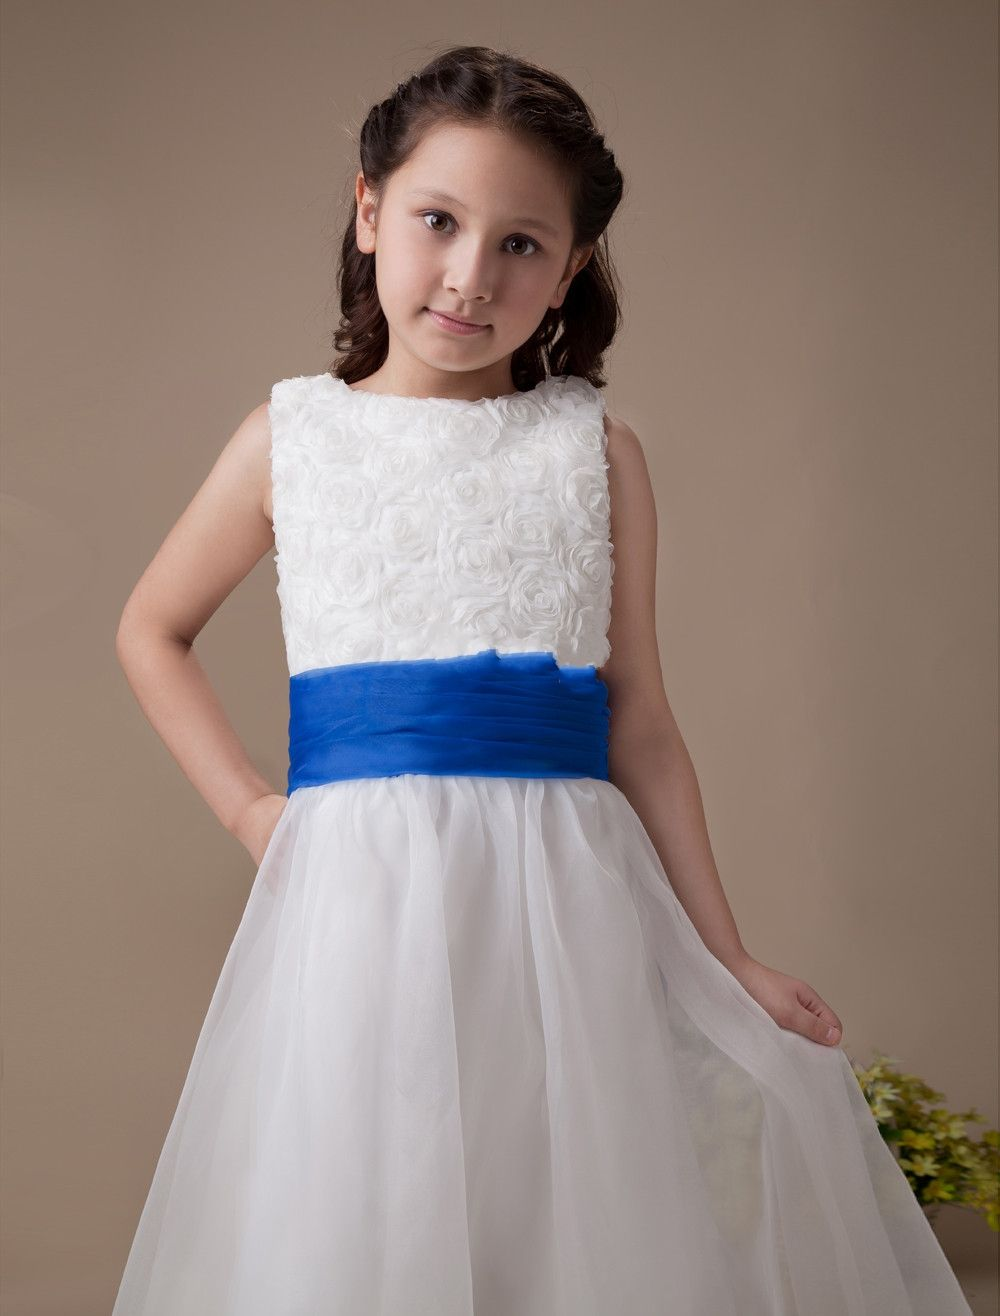 Dress for flower girls wedding party pinterest weddings dress for flower girls izmirmasajfo